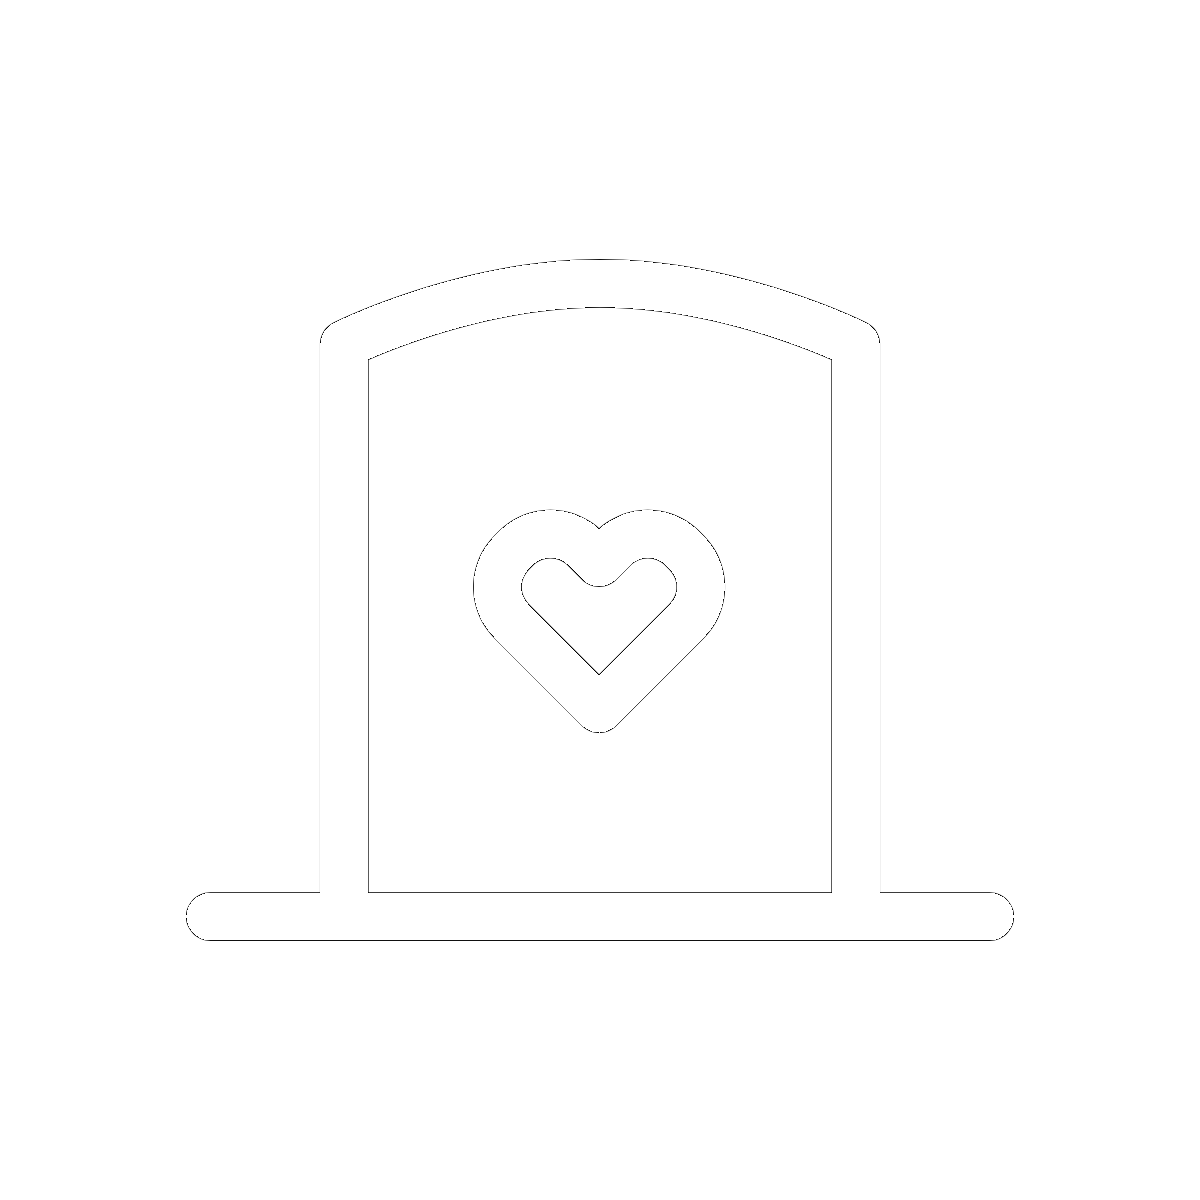 Theme Love, Death, and Mourning